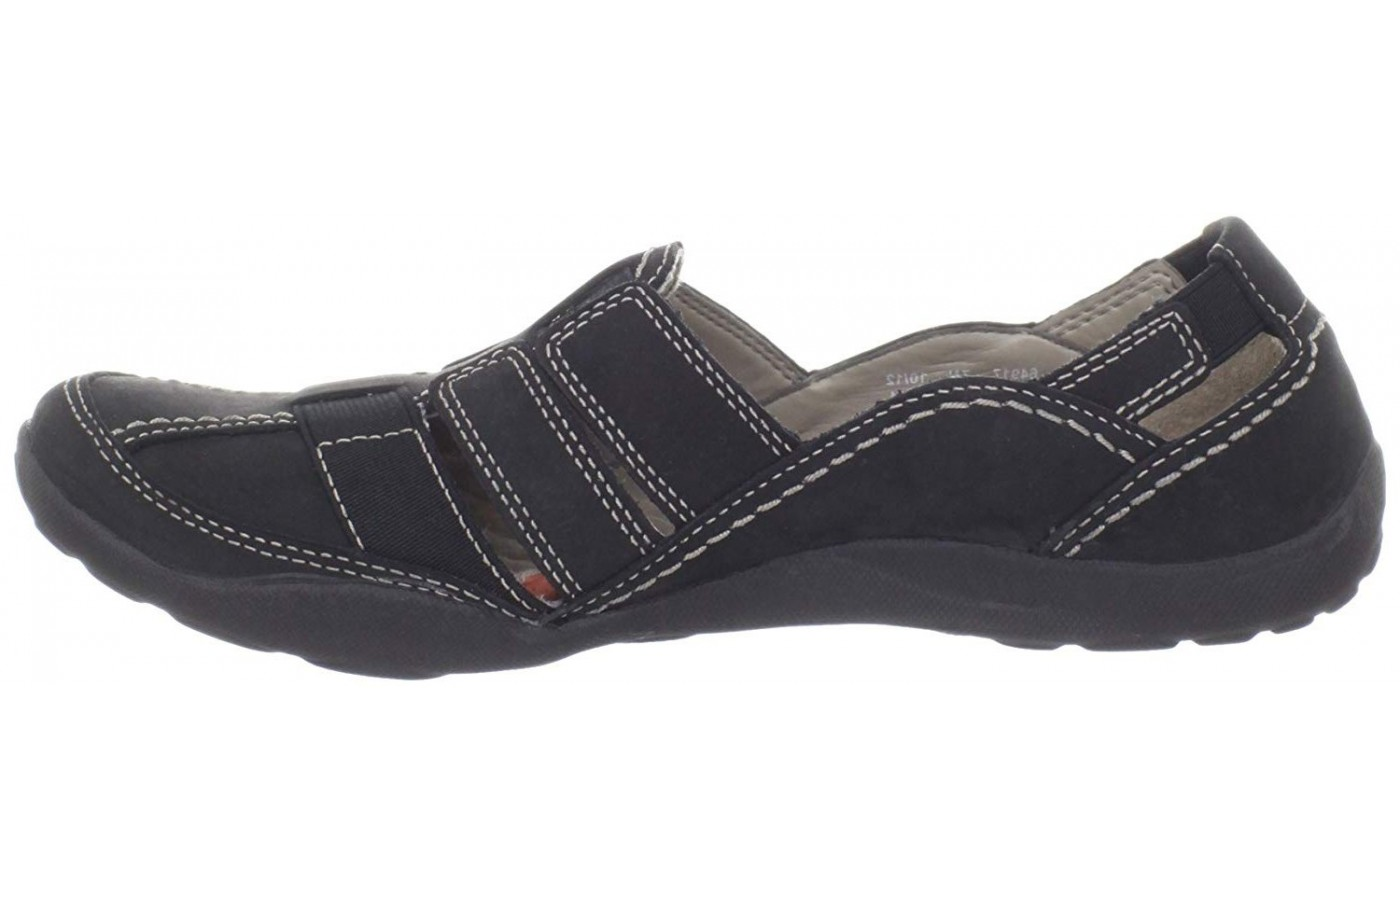 Clarks Haley Stork Insole